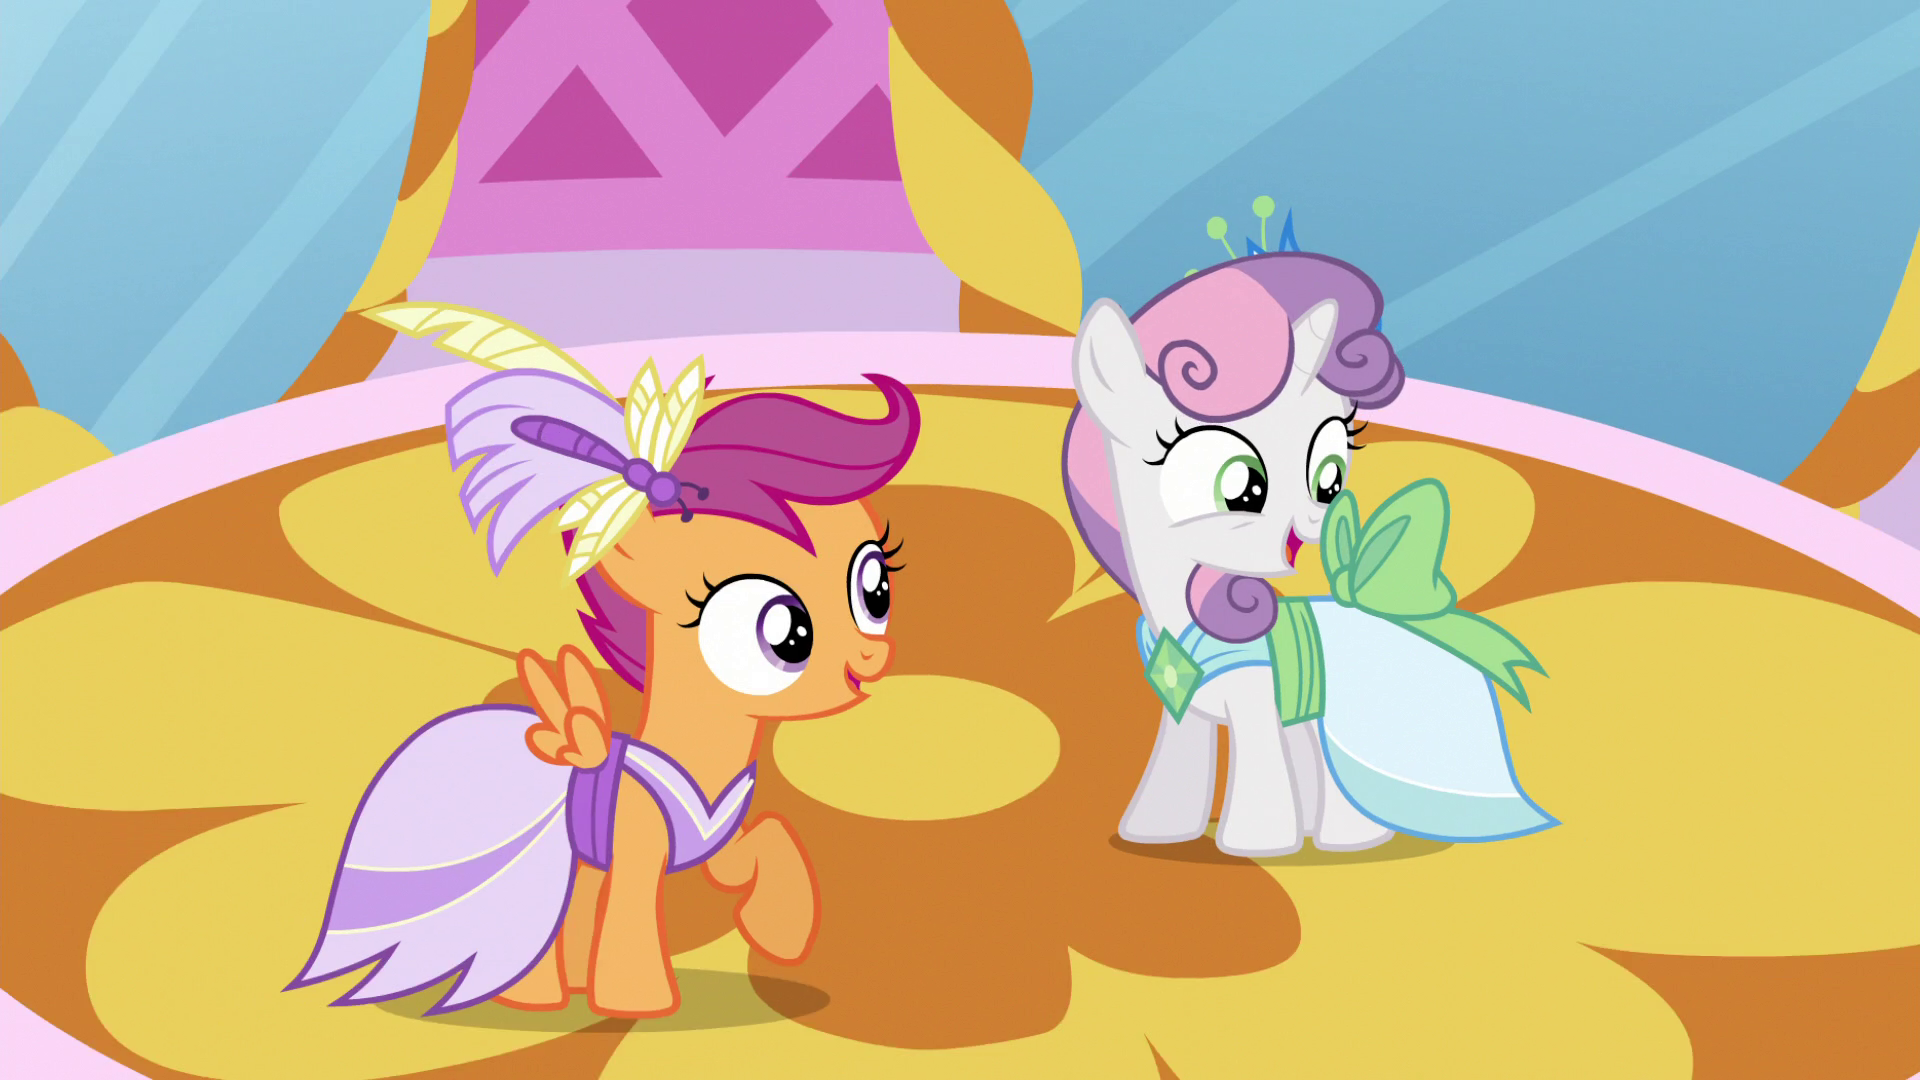 Scootaloo And Sweetie Belle In Gala Dresses S5e7 Png My Little Pony Games My Little Pony Friendship Mlp My Little Pony Discover the latest dresses with asos. scootaloo and sweetie belle in gala